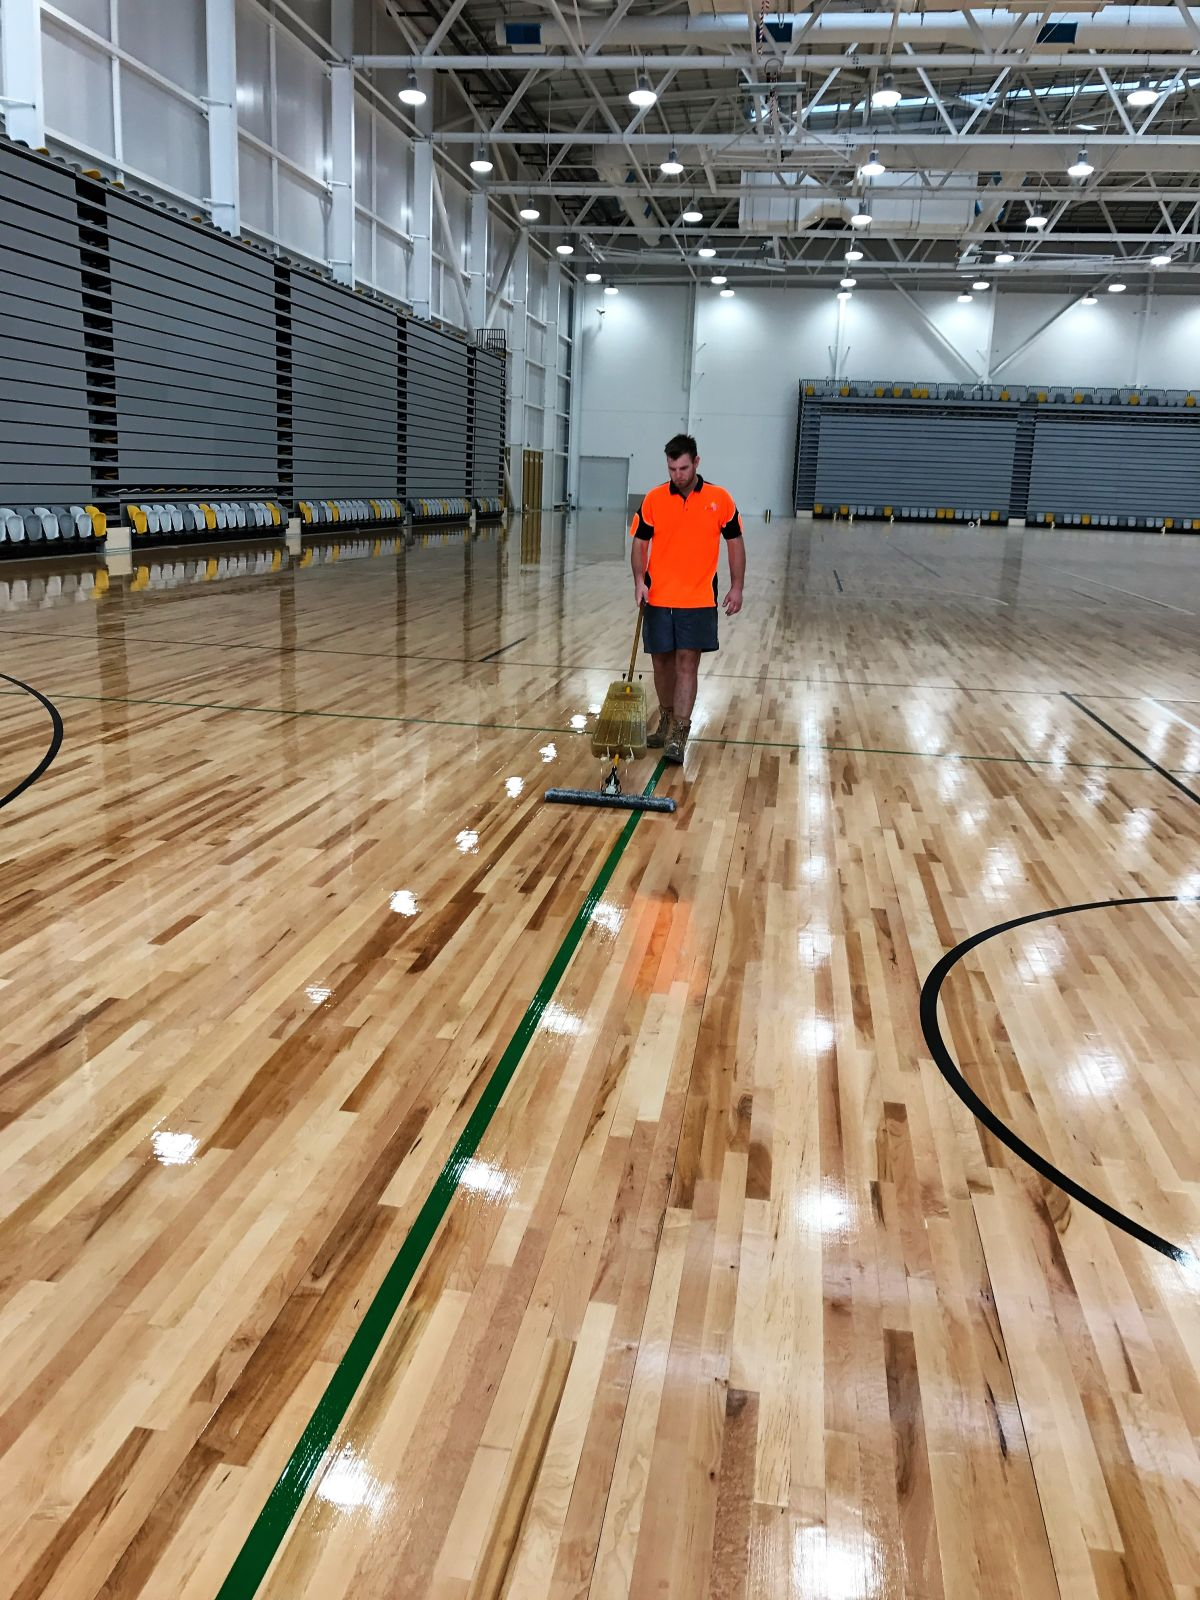 Gold Coast Sports & Leisure Centre 2018 Commonwealth Games Legacy Build